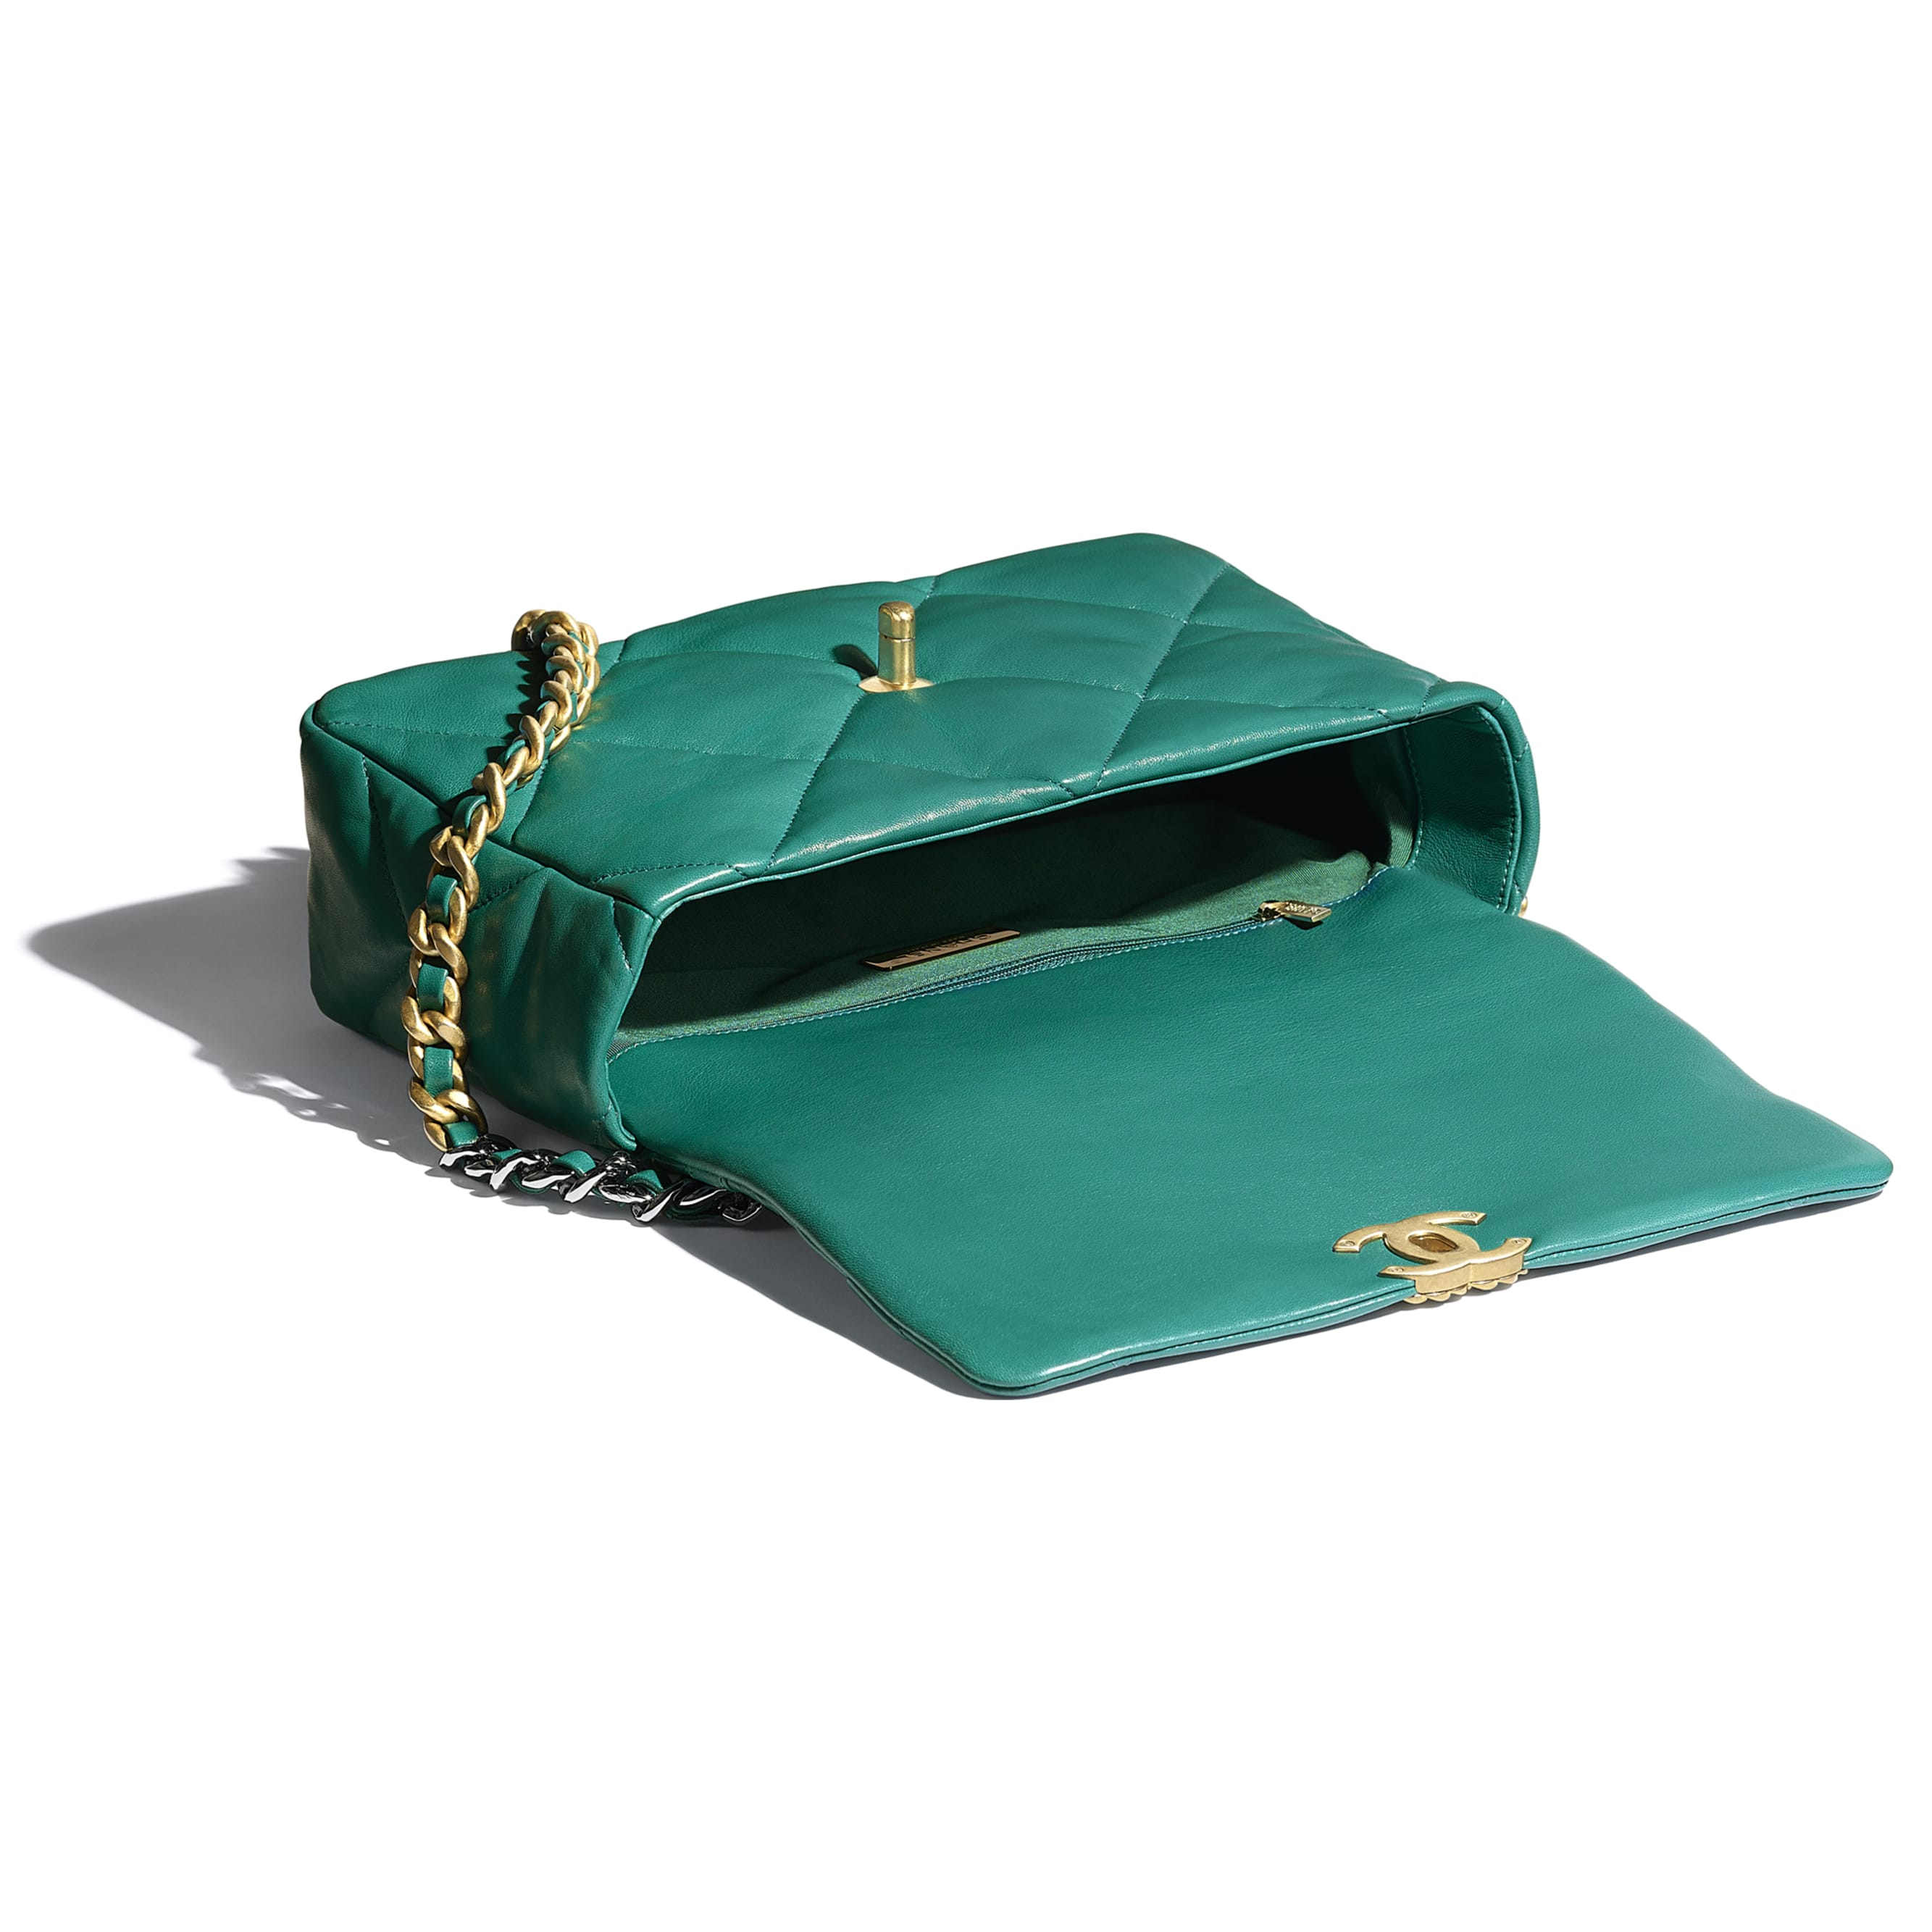 CHANEL 19 Large Flap Bag - Green - Lambskin, Gold-Tone, Silver-Tone & Ruthenium-Finish Metal - CHANEL - Other view - see standard sized version